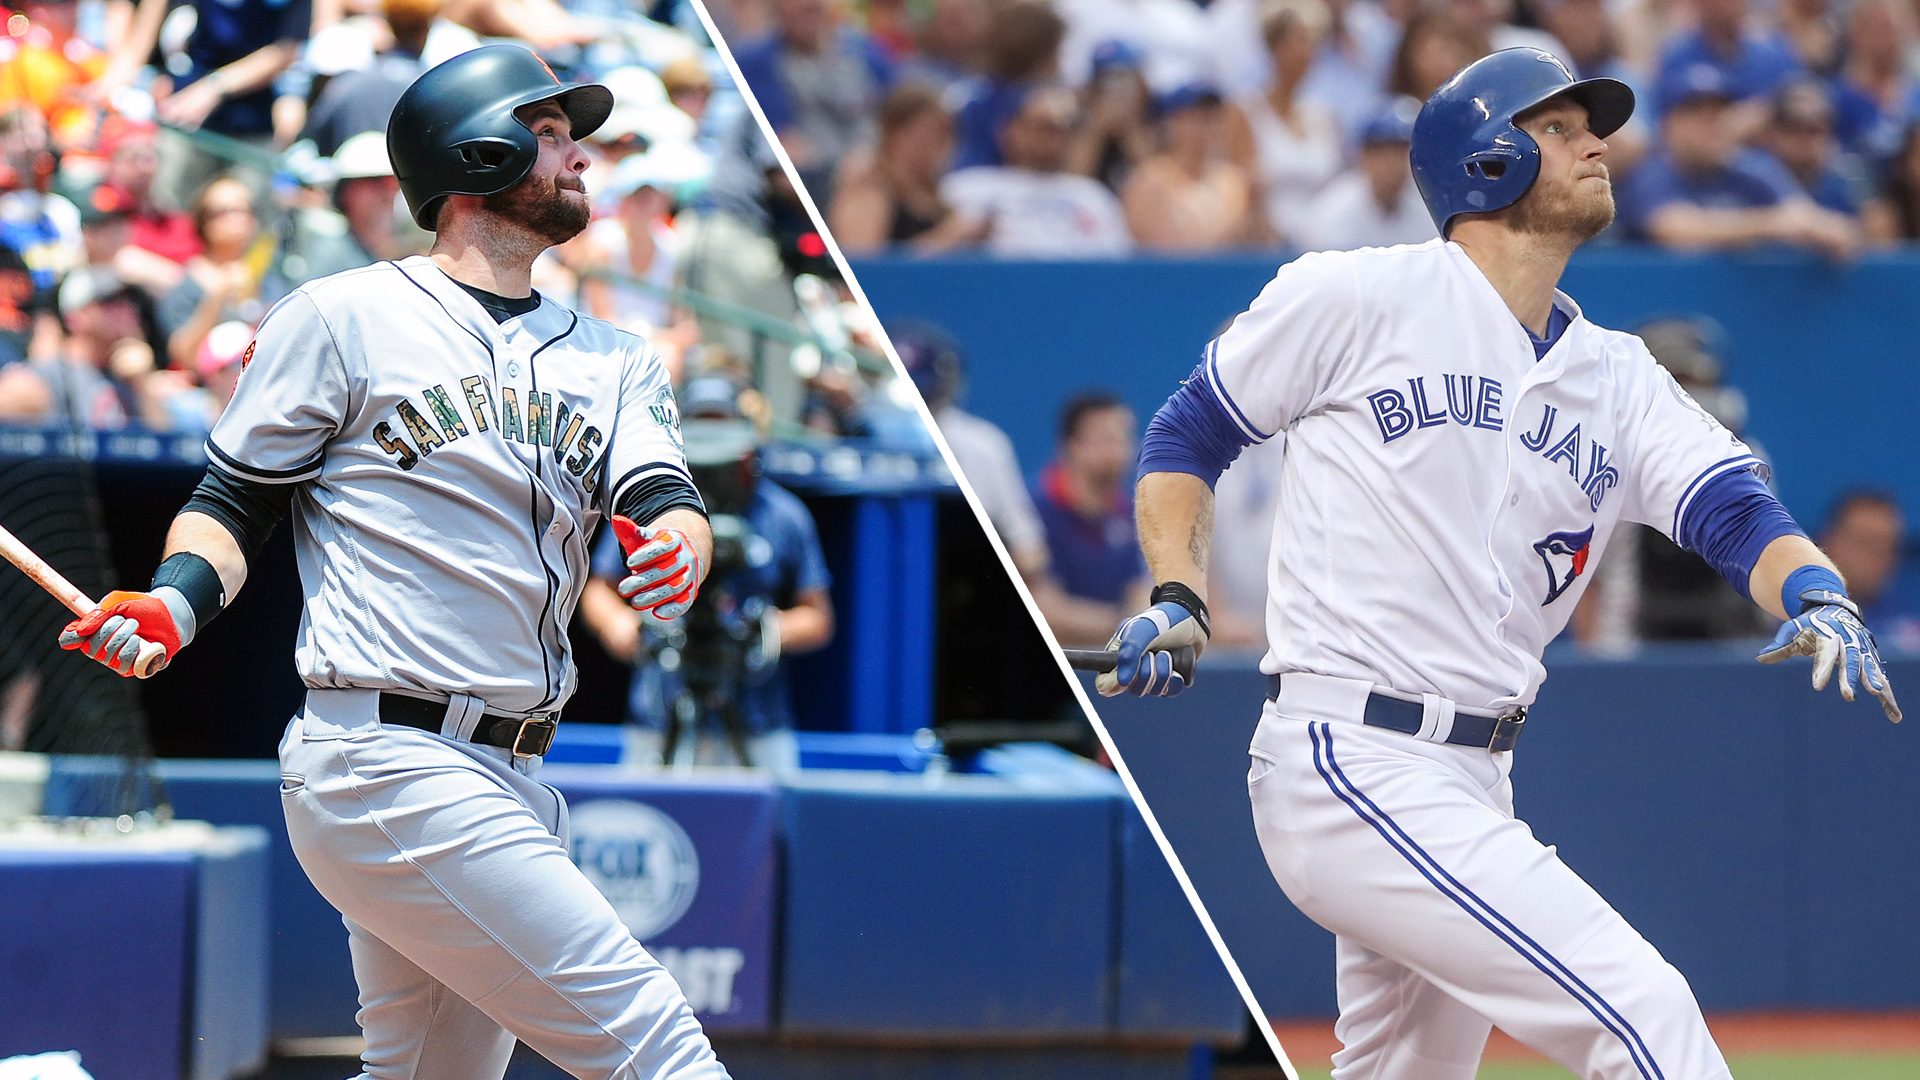 Michael Saunders, Brandon Belt earn final All-Star berths